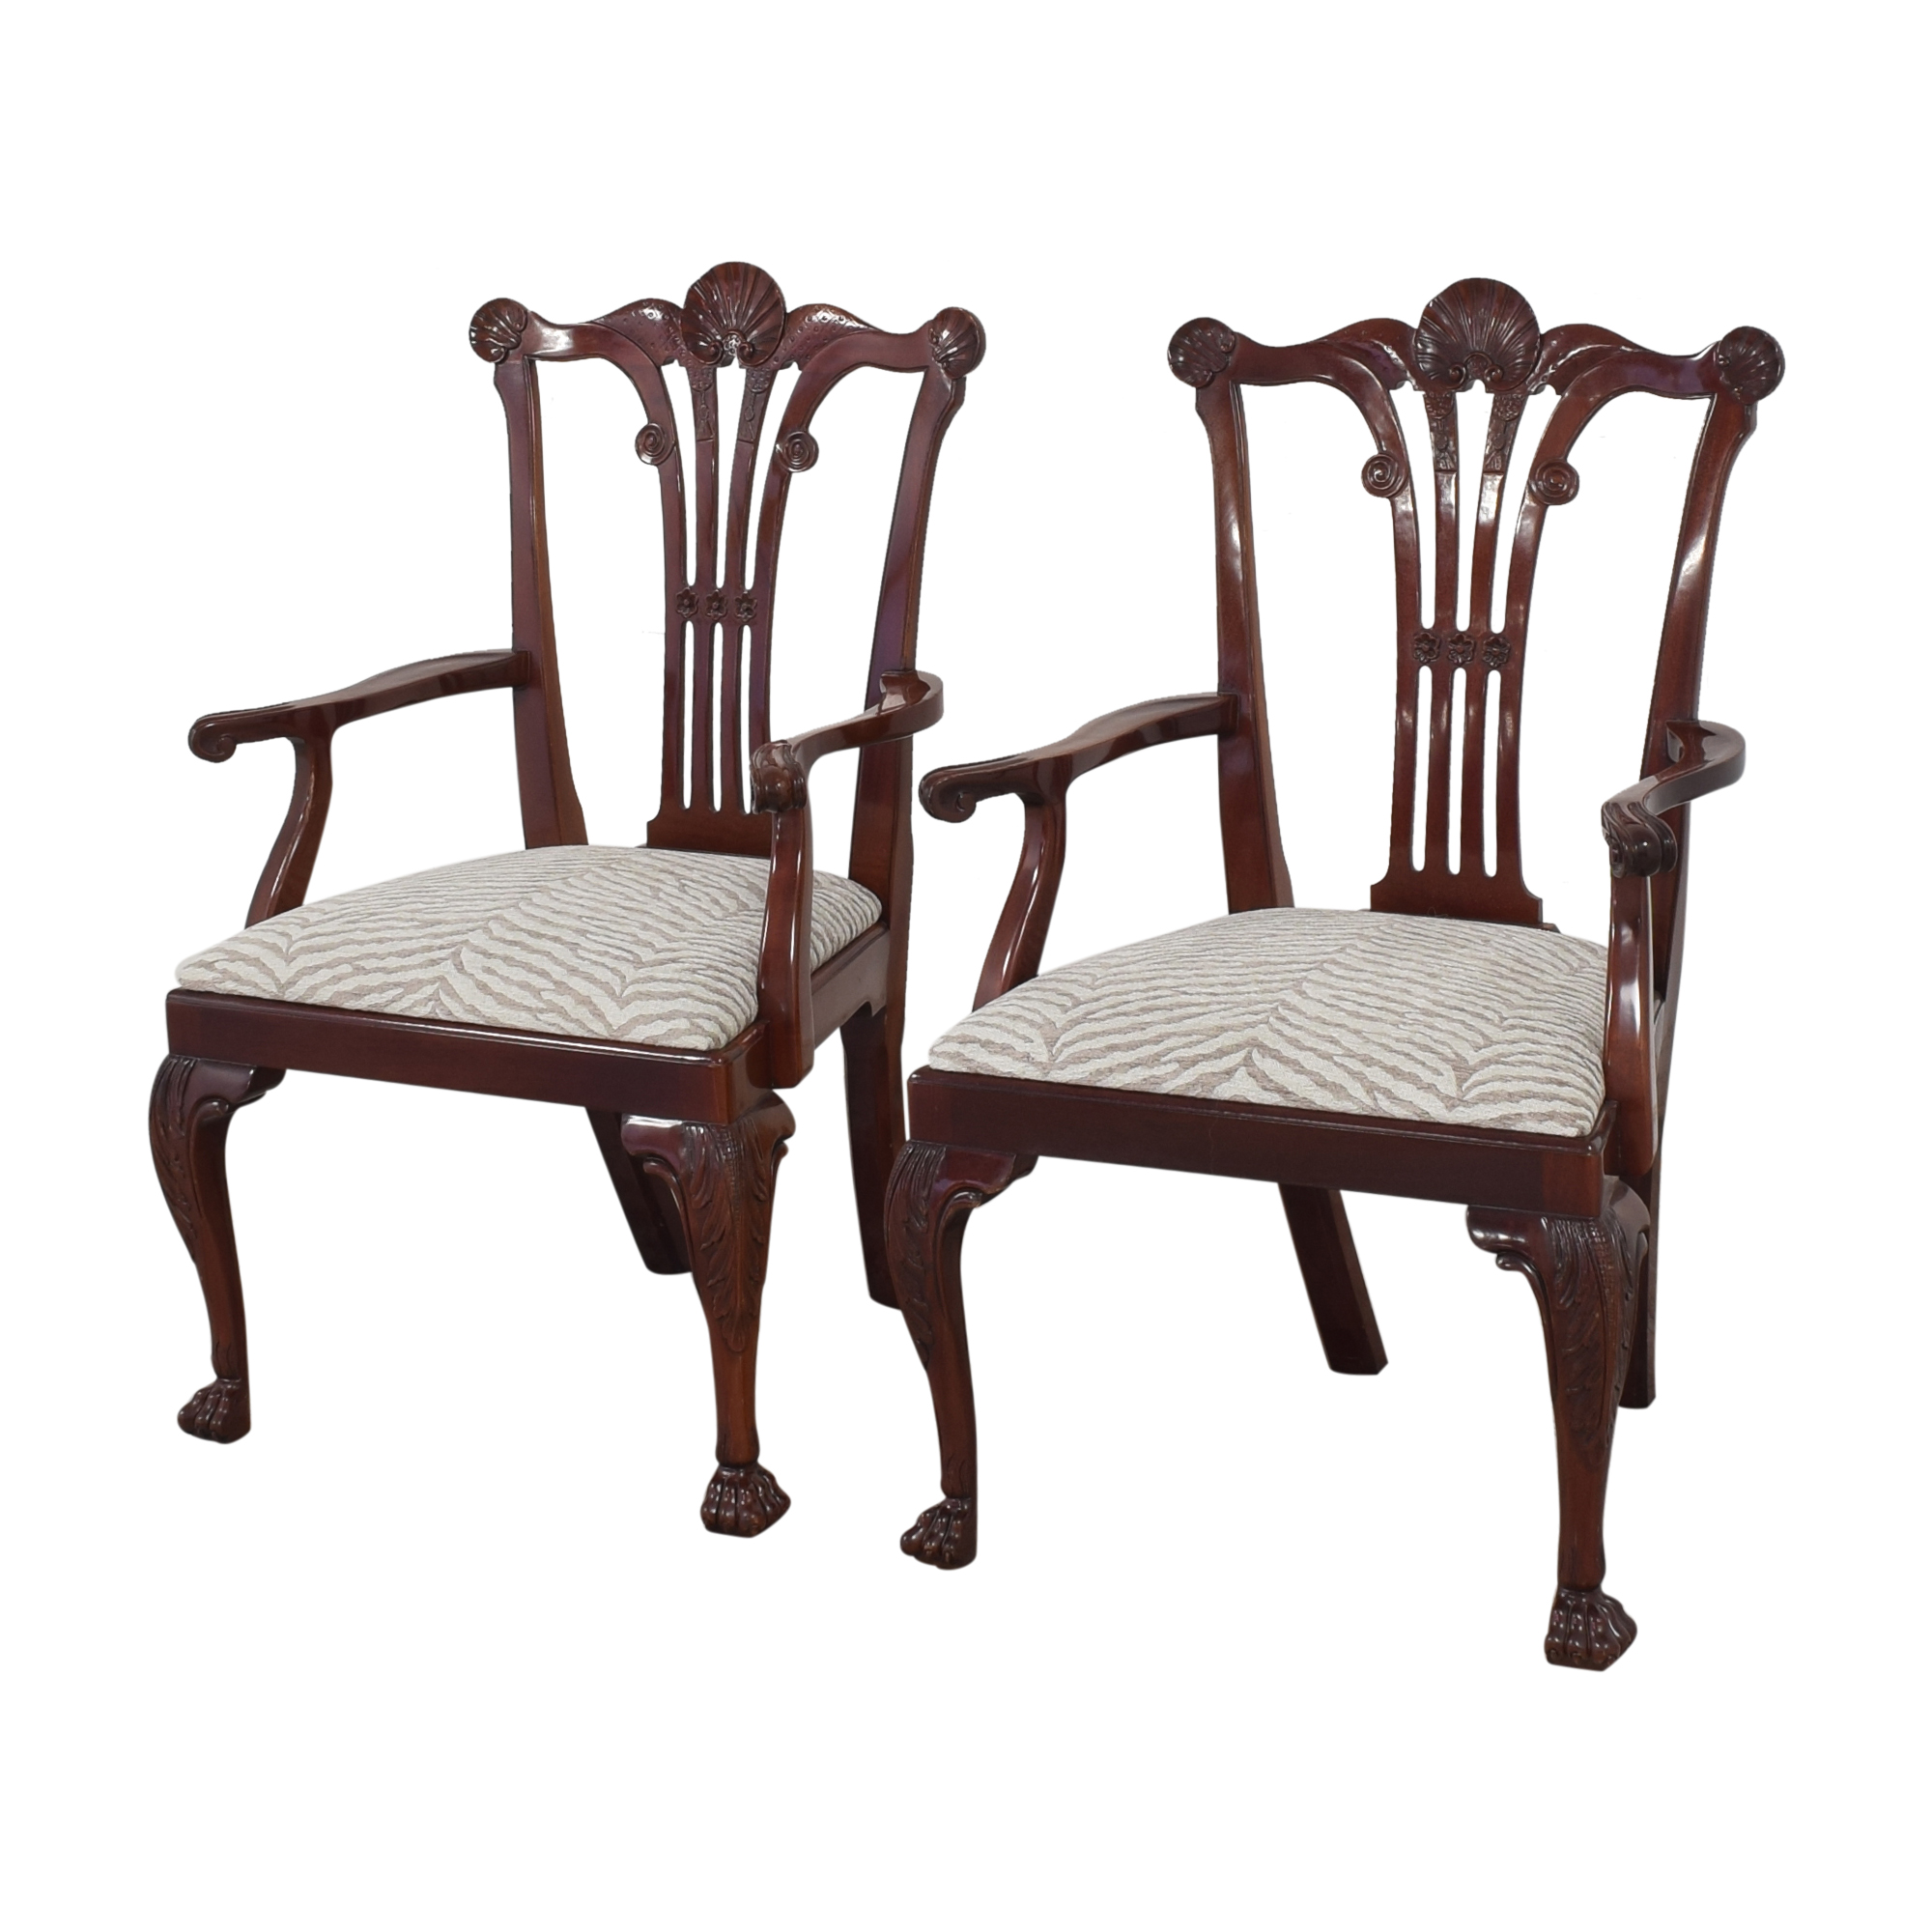 buy Kindel Kindel Chippendale-Style Dining Arm Chairs online